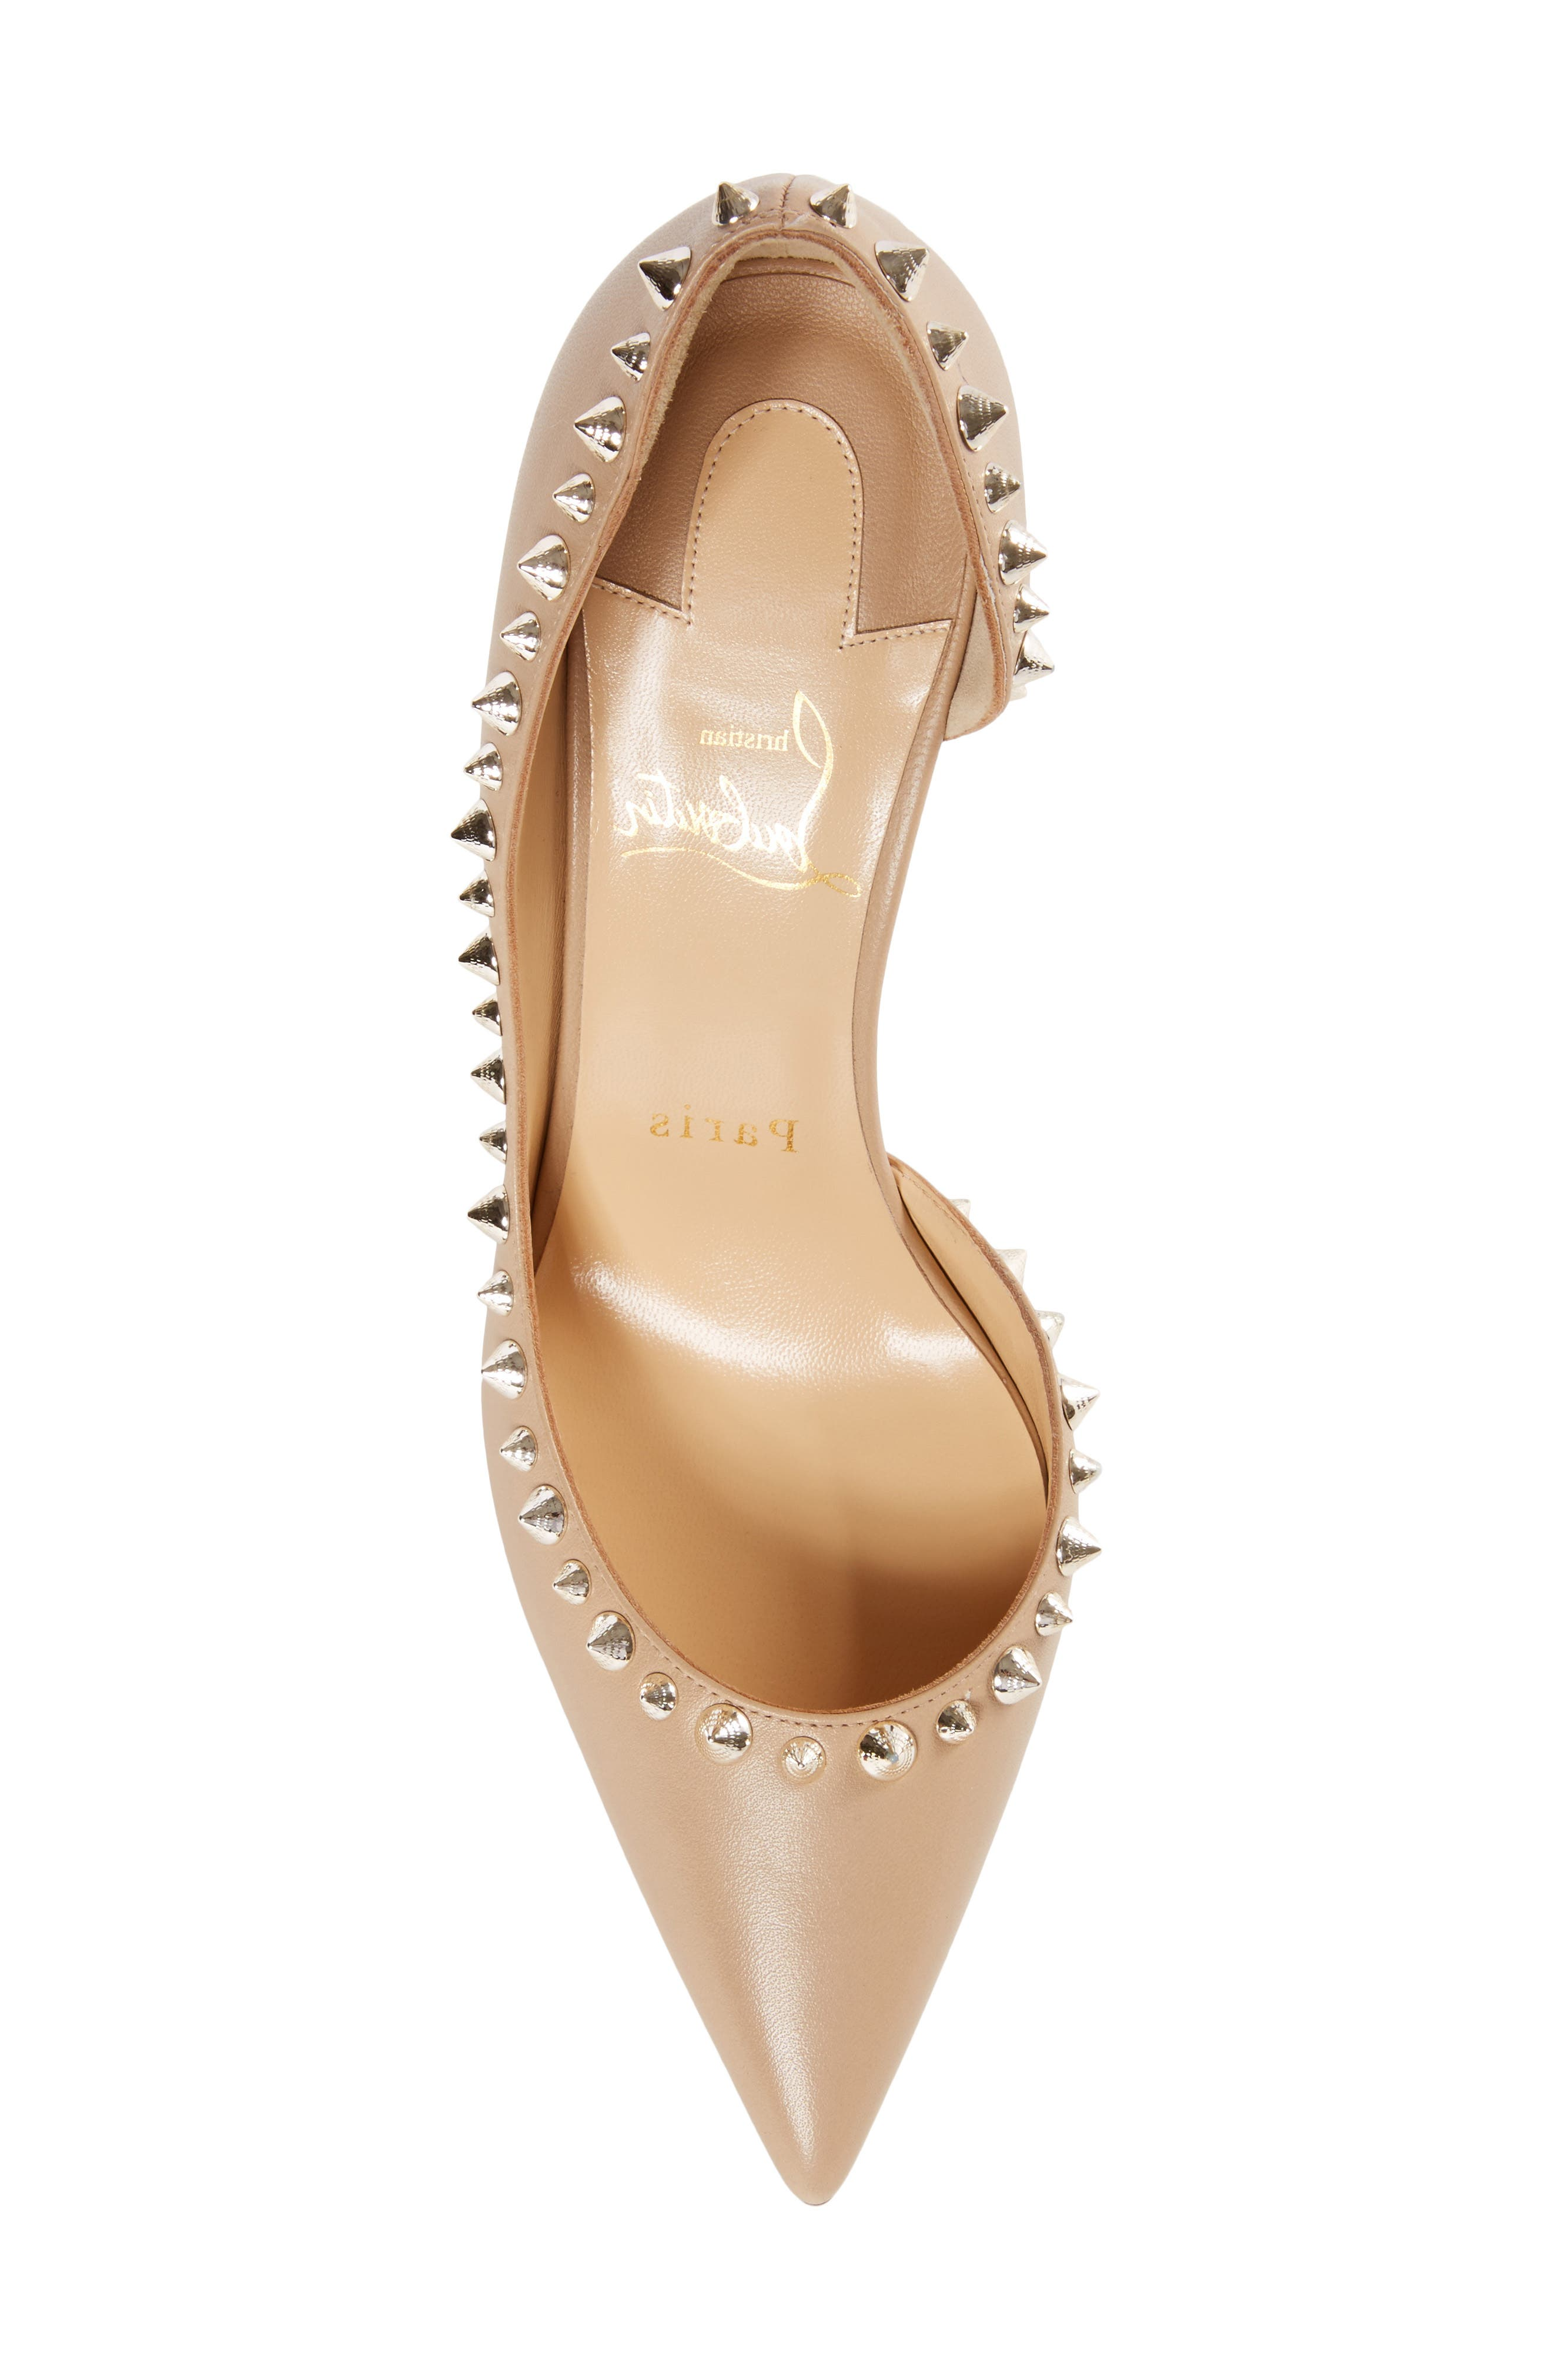 Irishell Studded Half d'Orsay Pump,                             Alternate thumbnail 5, color,                             NUDE/ WHITE GOLD